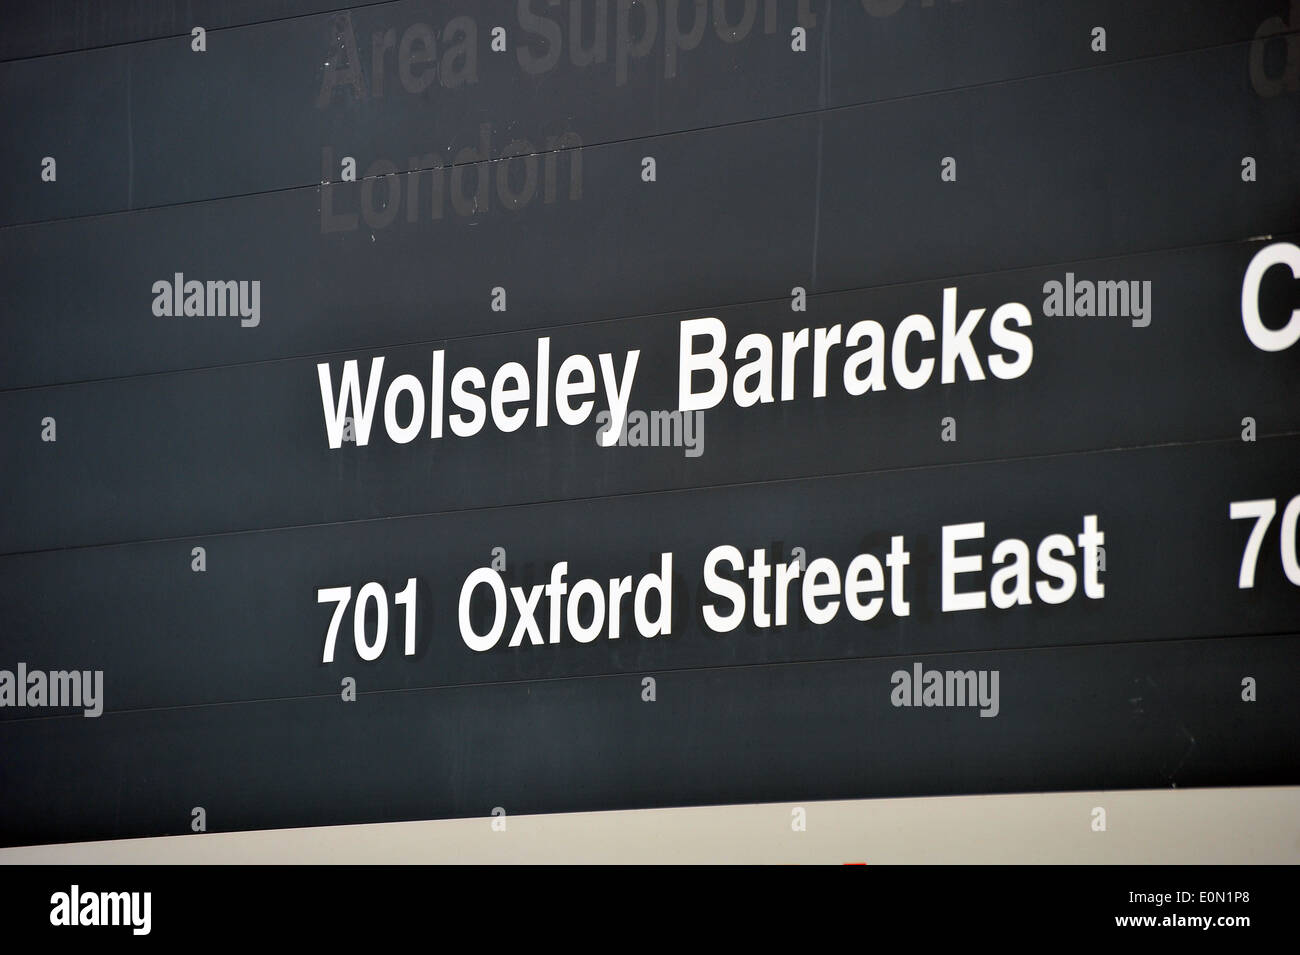 The entrance sign to Wolseley Barracks military base in London, Ontario Canada. - Stock Image